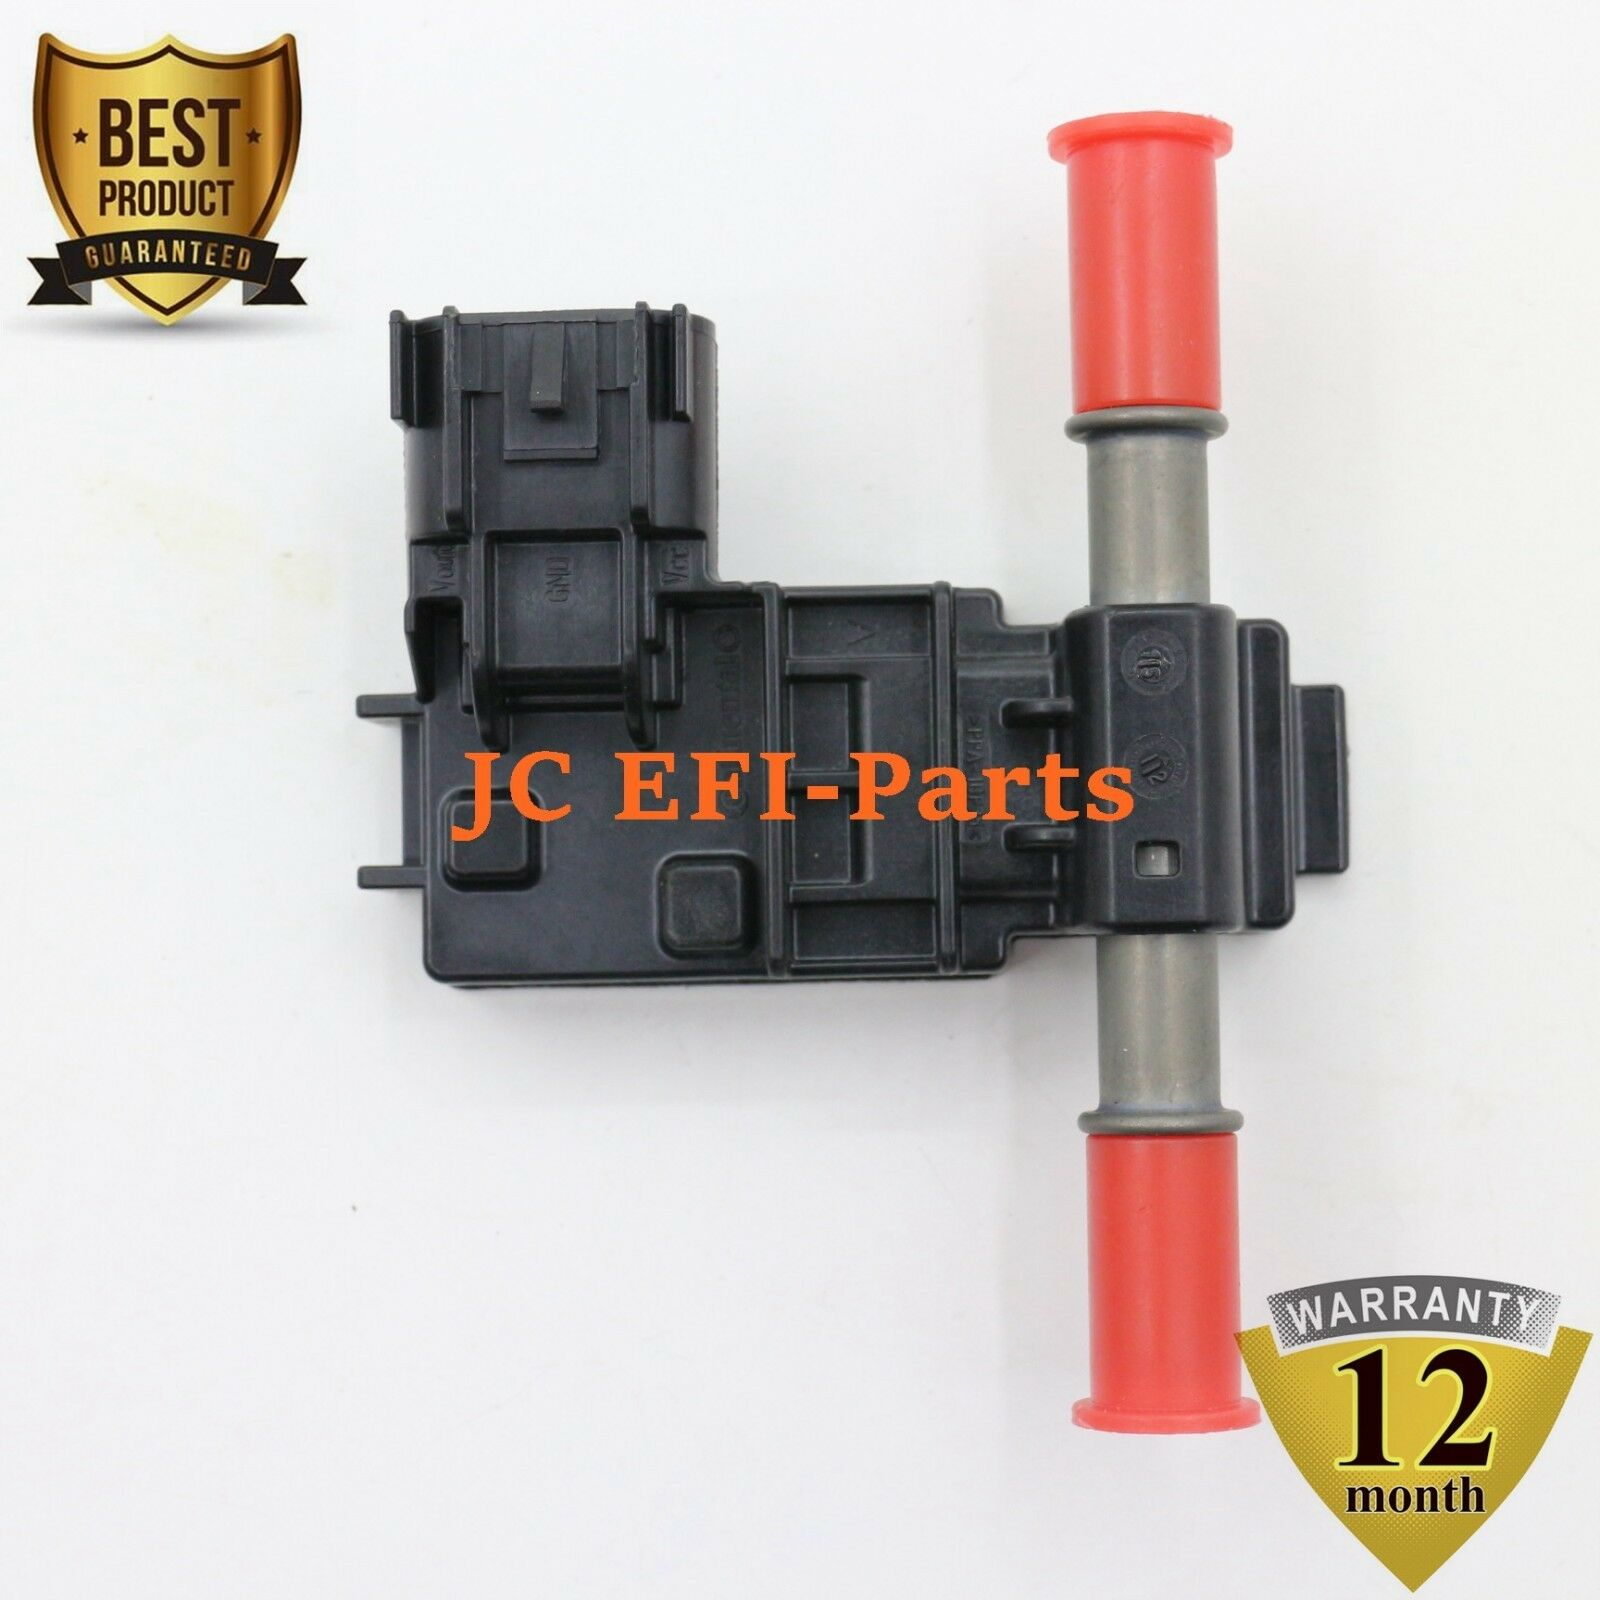 13577429 13577429C - Fuel Composition (Flex Fuel) Sensor (E85) 1 of 4Only 0  available 13577429 13577429C - Fuel Composition (Flex Fuel) Sensor ...